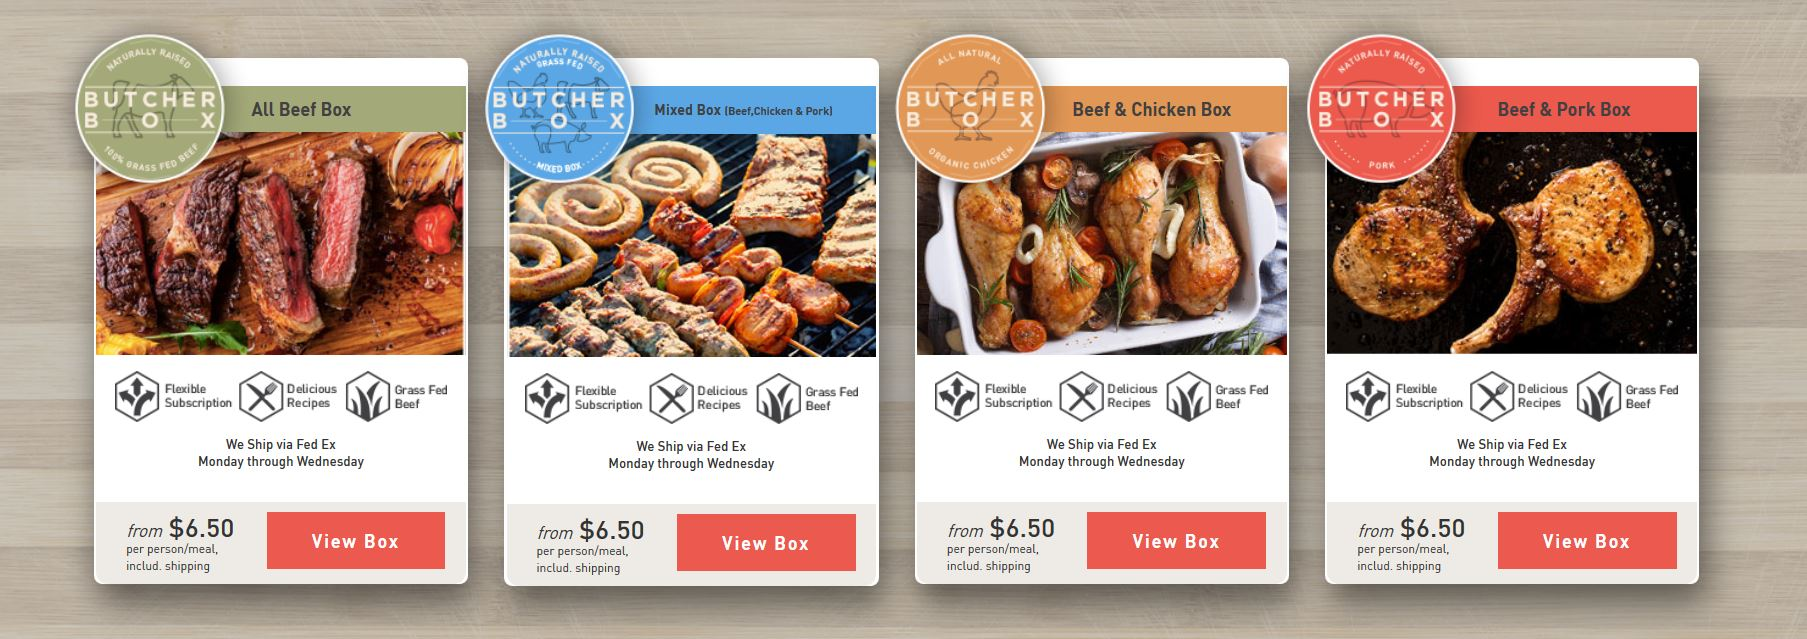 Butcher Box Packages Of Grass Fed Meats Delivered Locally